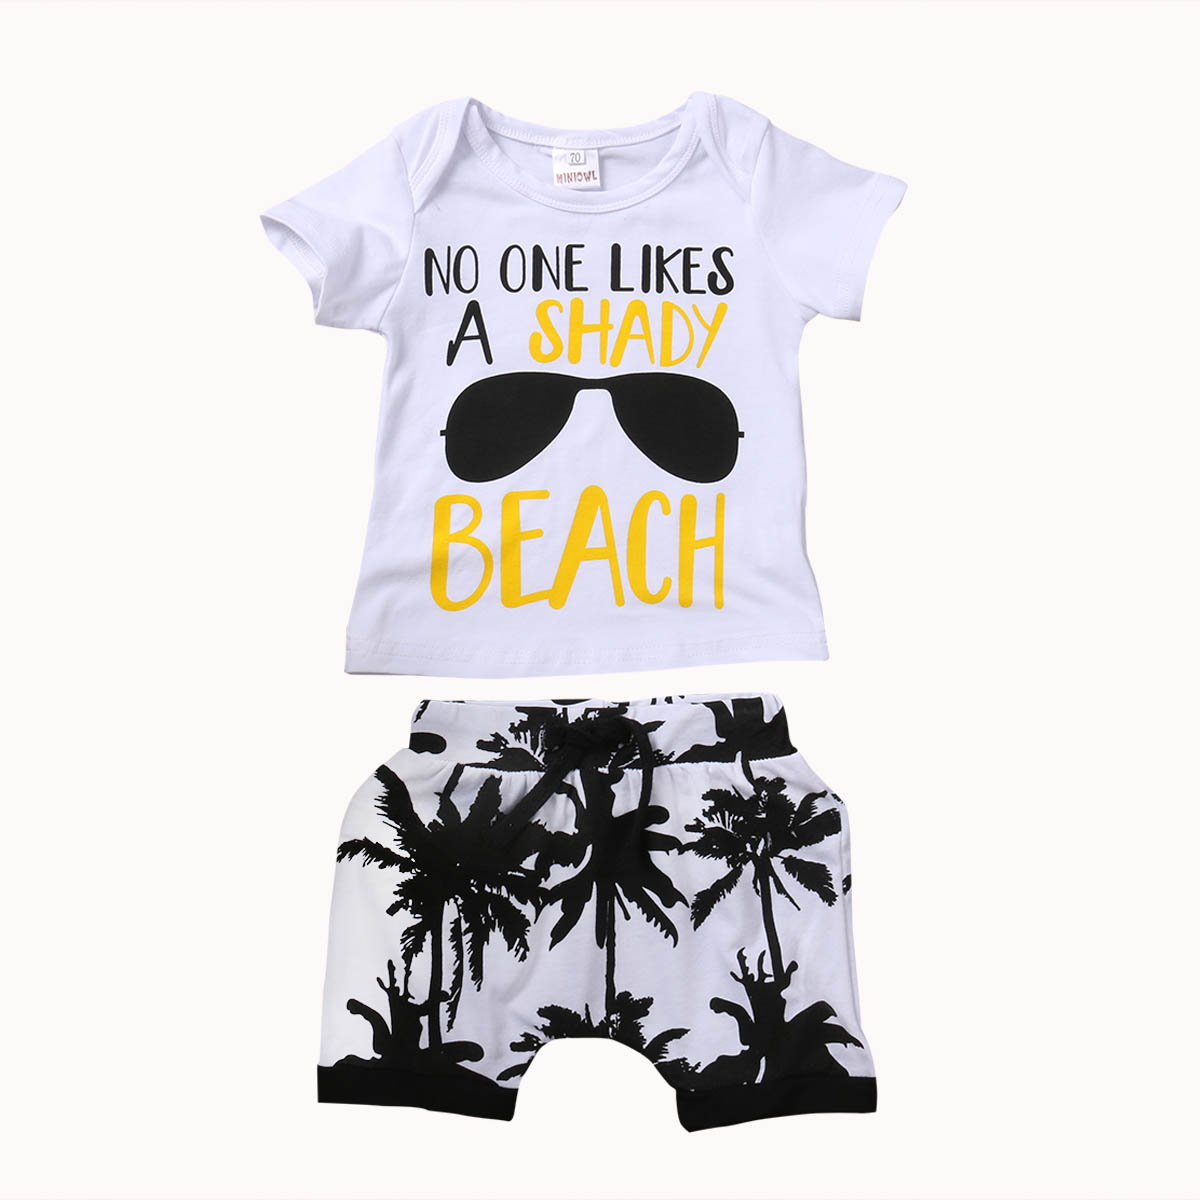 2 Pieces Toddler Newborn Infant Baby Kids Boy Outfit T-shirt Tops+Pants Shorts Cotton Clothes Set 0-3T infant baby boy girl 2pcs clothes set kids short sleeve you serious clark letters romper tops car print pants 2pcs outfit set